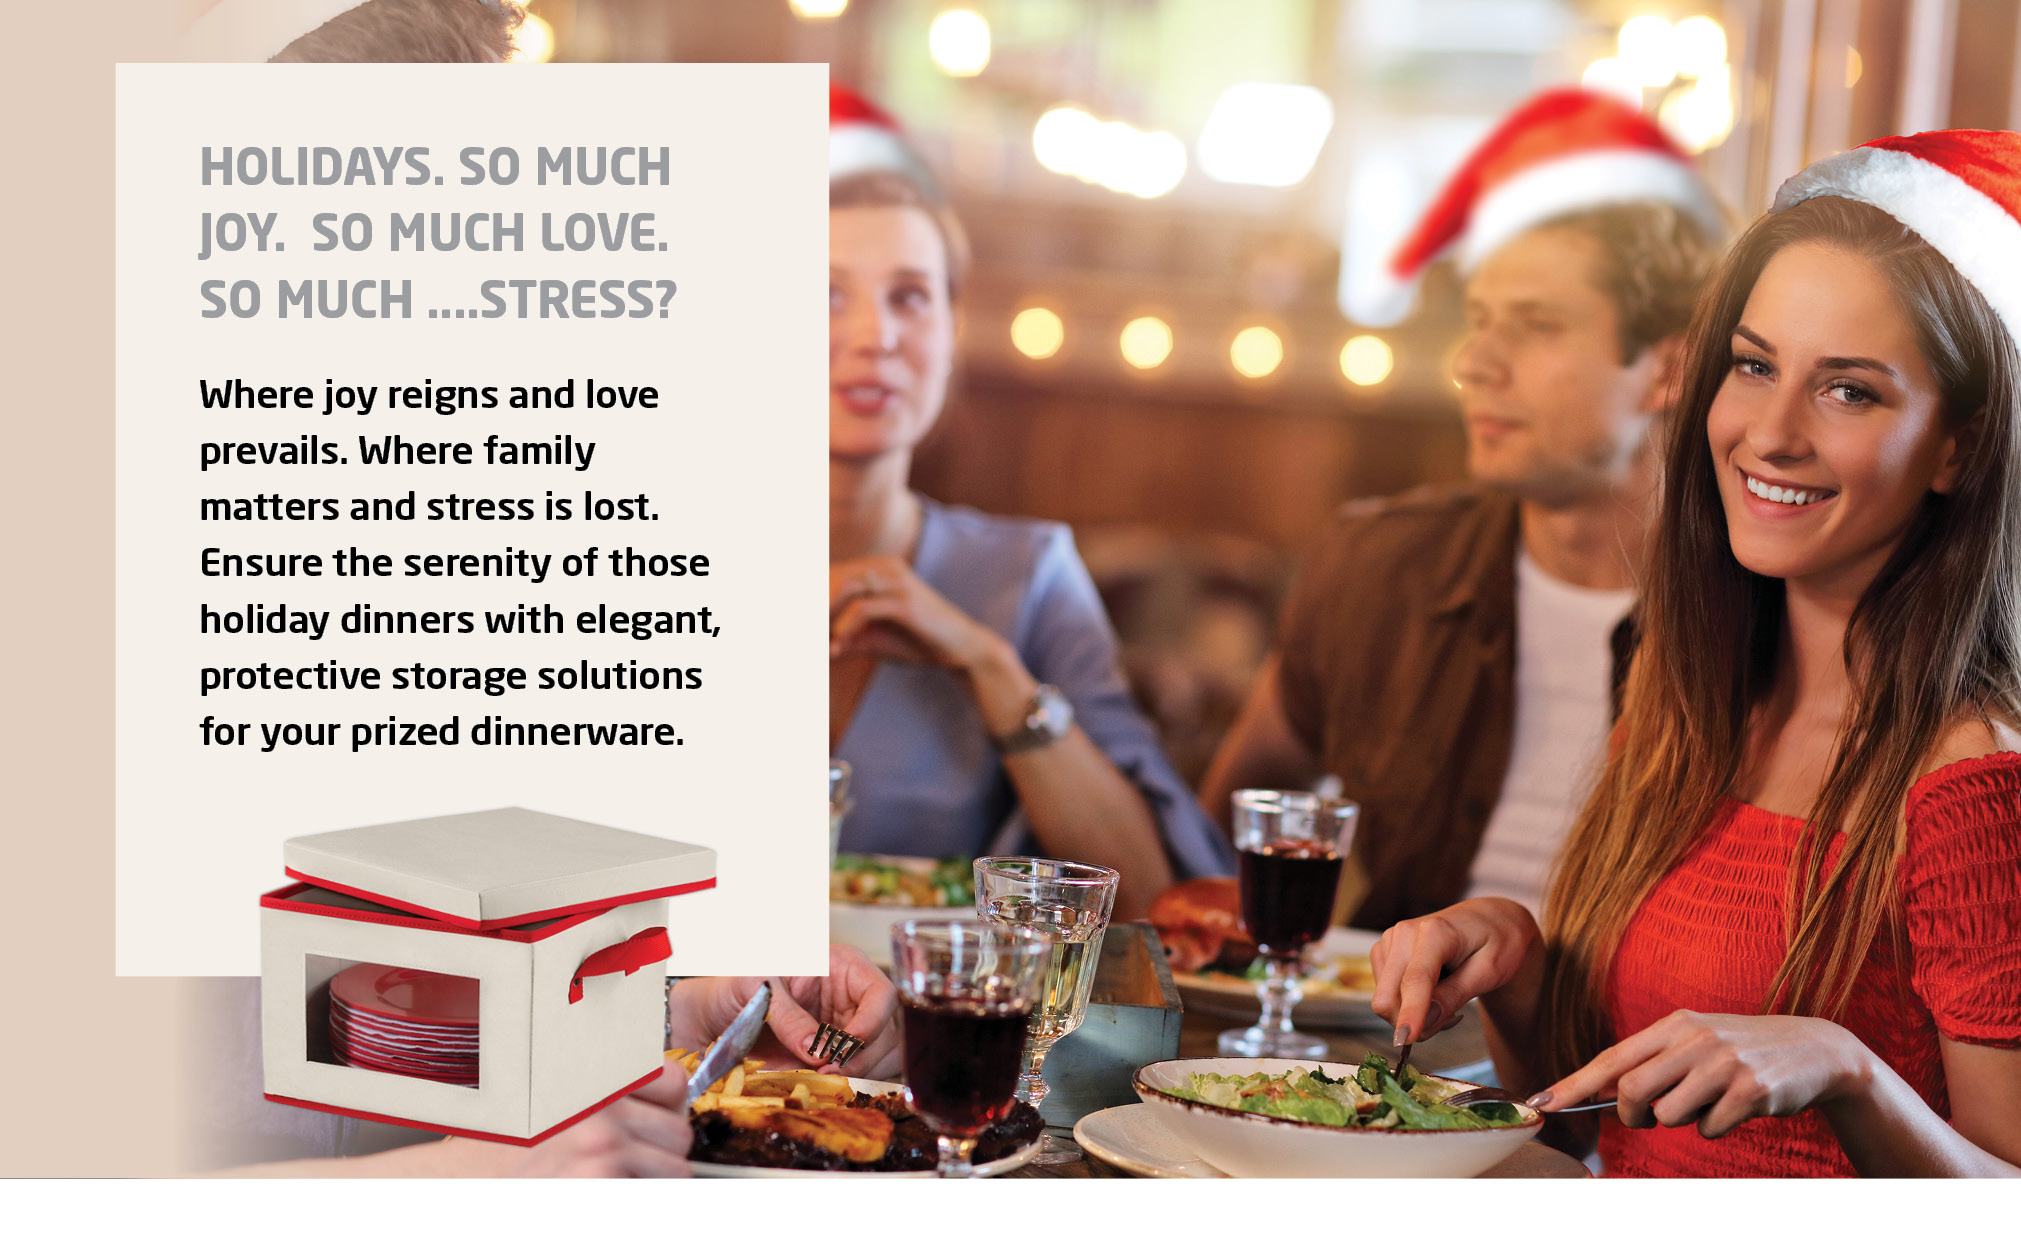 4-Pack Holiday Plate Boxes, Includes Salad, Soup, Dinner, and Mug Storage Box, Non-Woven Ivory and Red